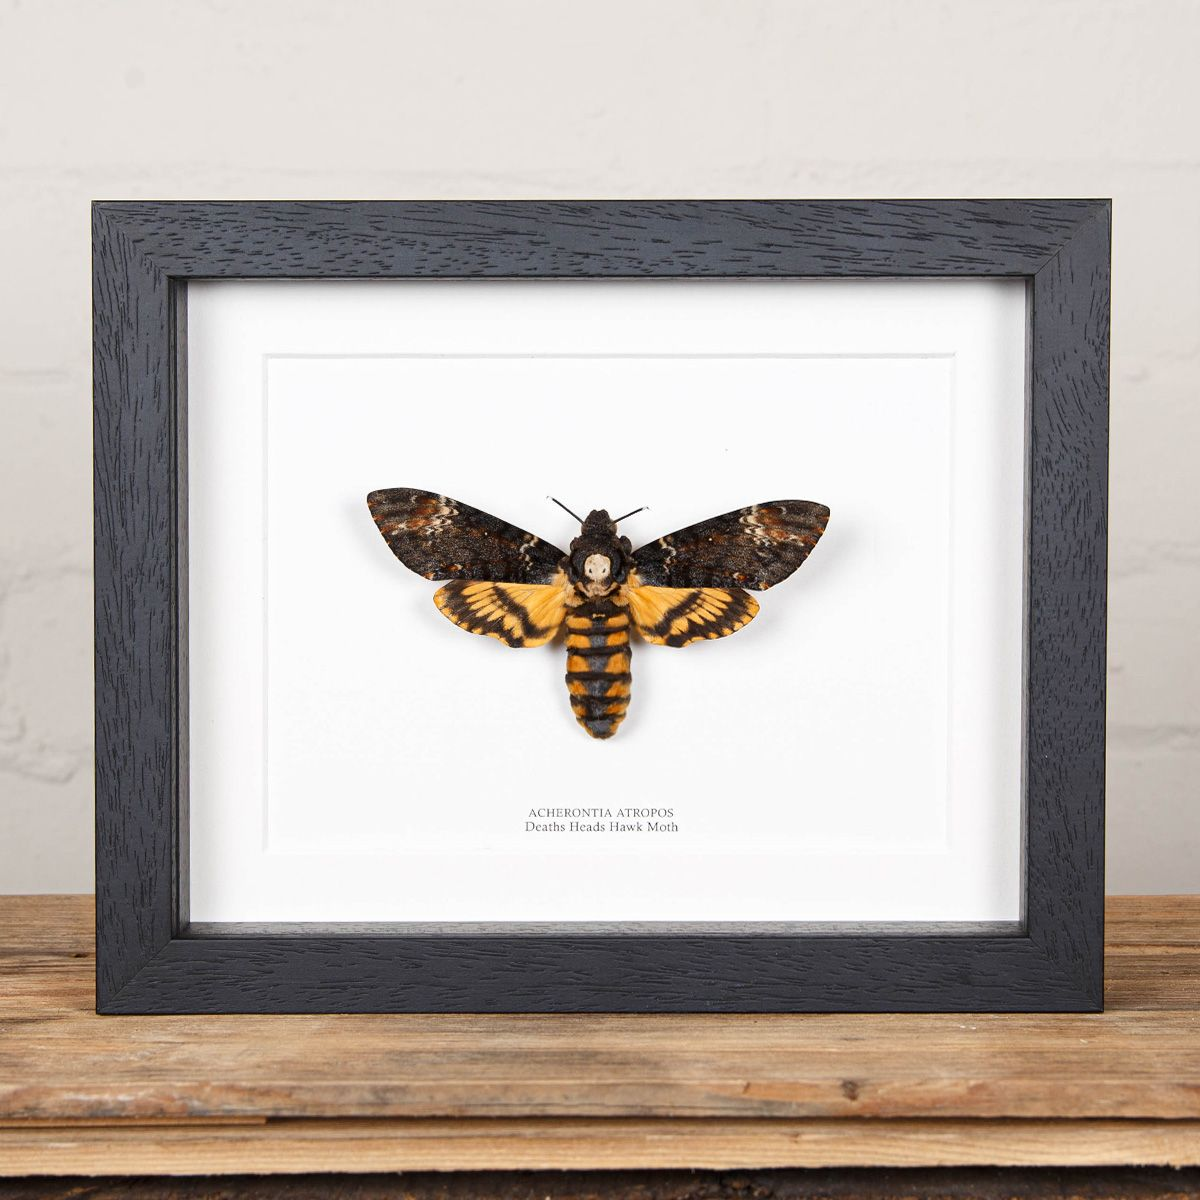 XL Deaths Head Hawk Moth in Box Frame (Acherontia atropos)